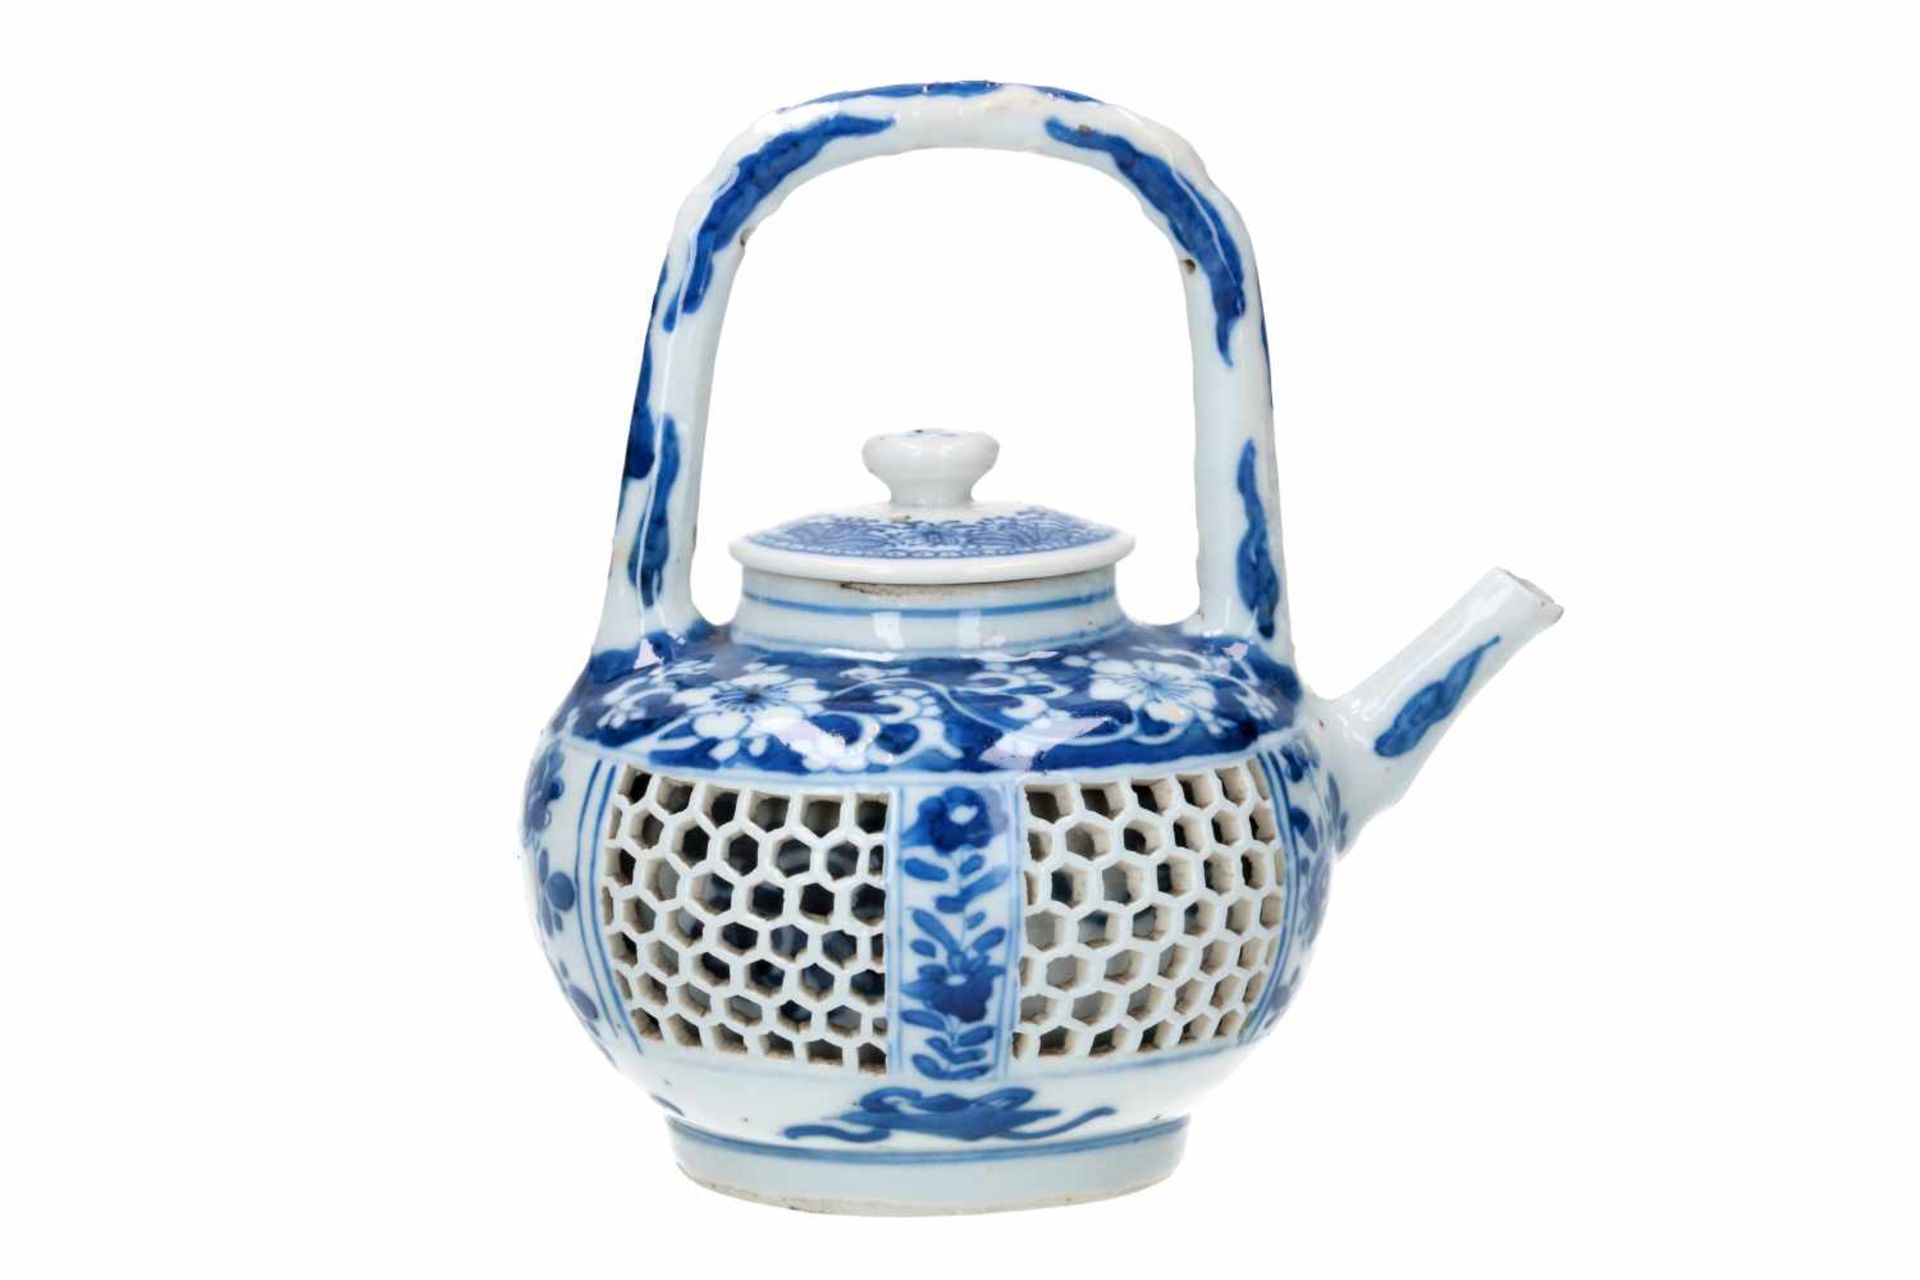 A blue and white porcelain teapot with open work belly, decorated with flowers and censers. Cover - Bild 2 aus 5